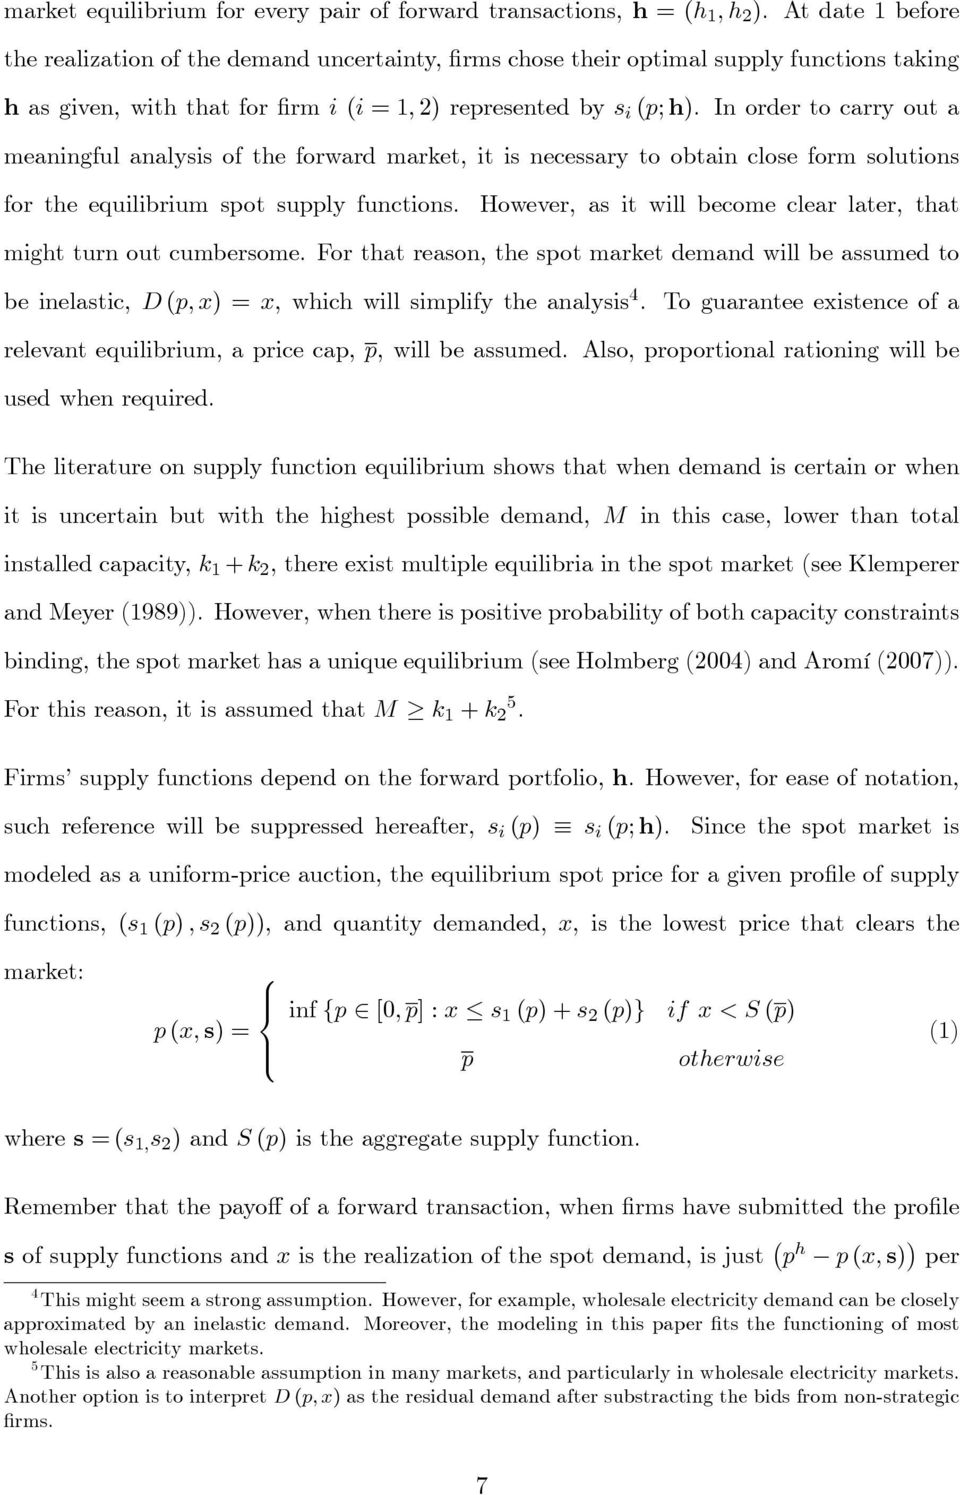 In order to carry out a meaningful analysis of the forward market, it is necessary to obtain close form solutions for the equilibrium spot supply functions.